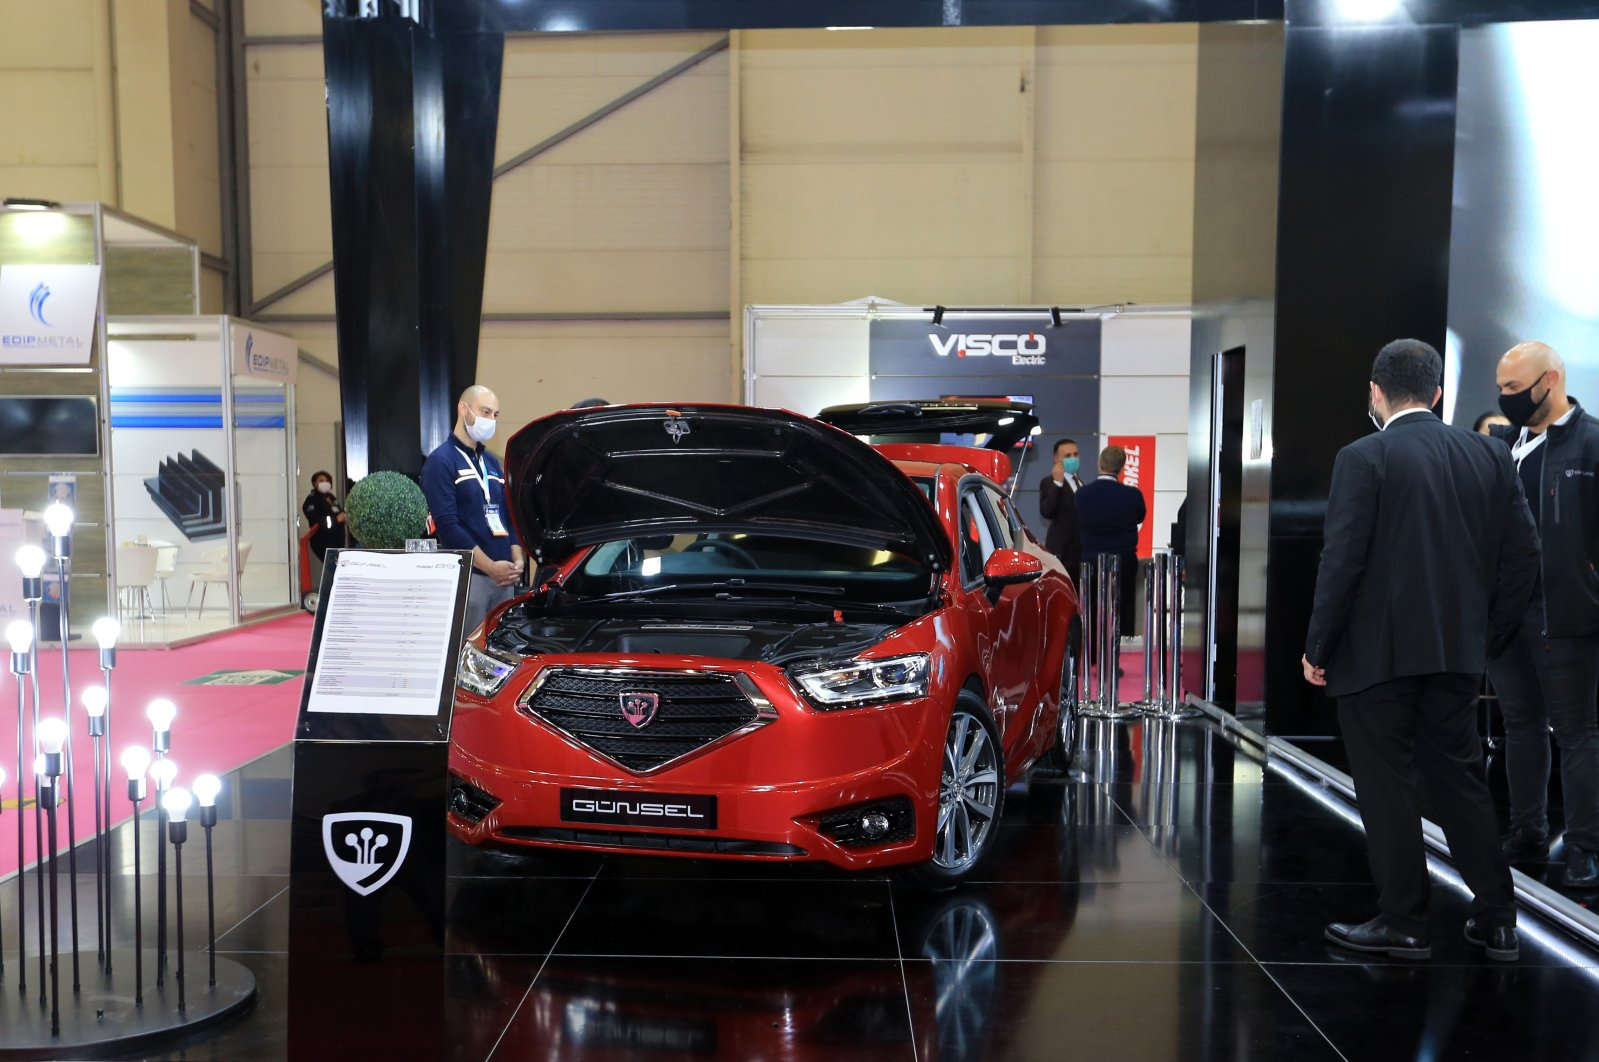 The Turkish Republic of Northern Cyprus' (TRNC) domestically manufactured automobile, Günsel, is seen on the sidelines of the MÜSIAD EXPO 2020 in Istanbul, Turkey, Nov. 18, 2020. (AA Photo)